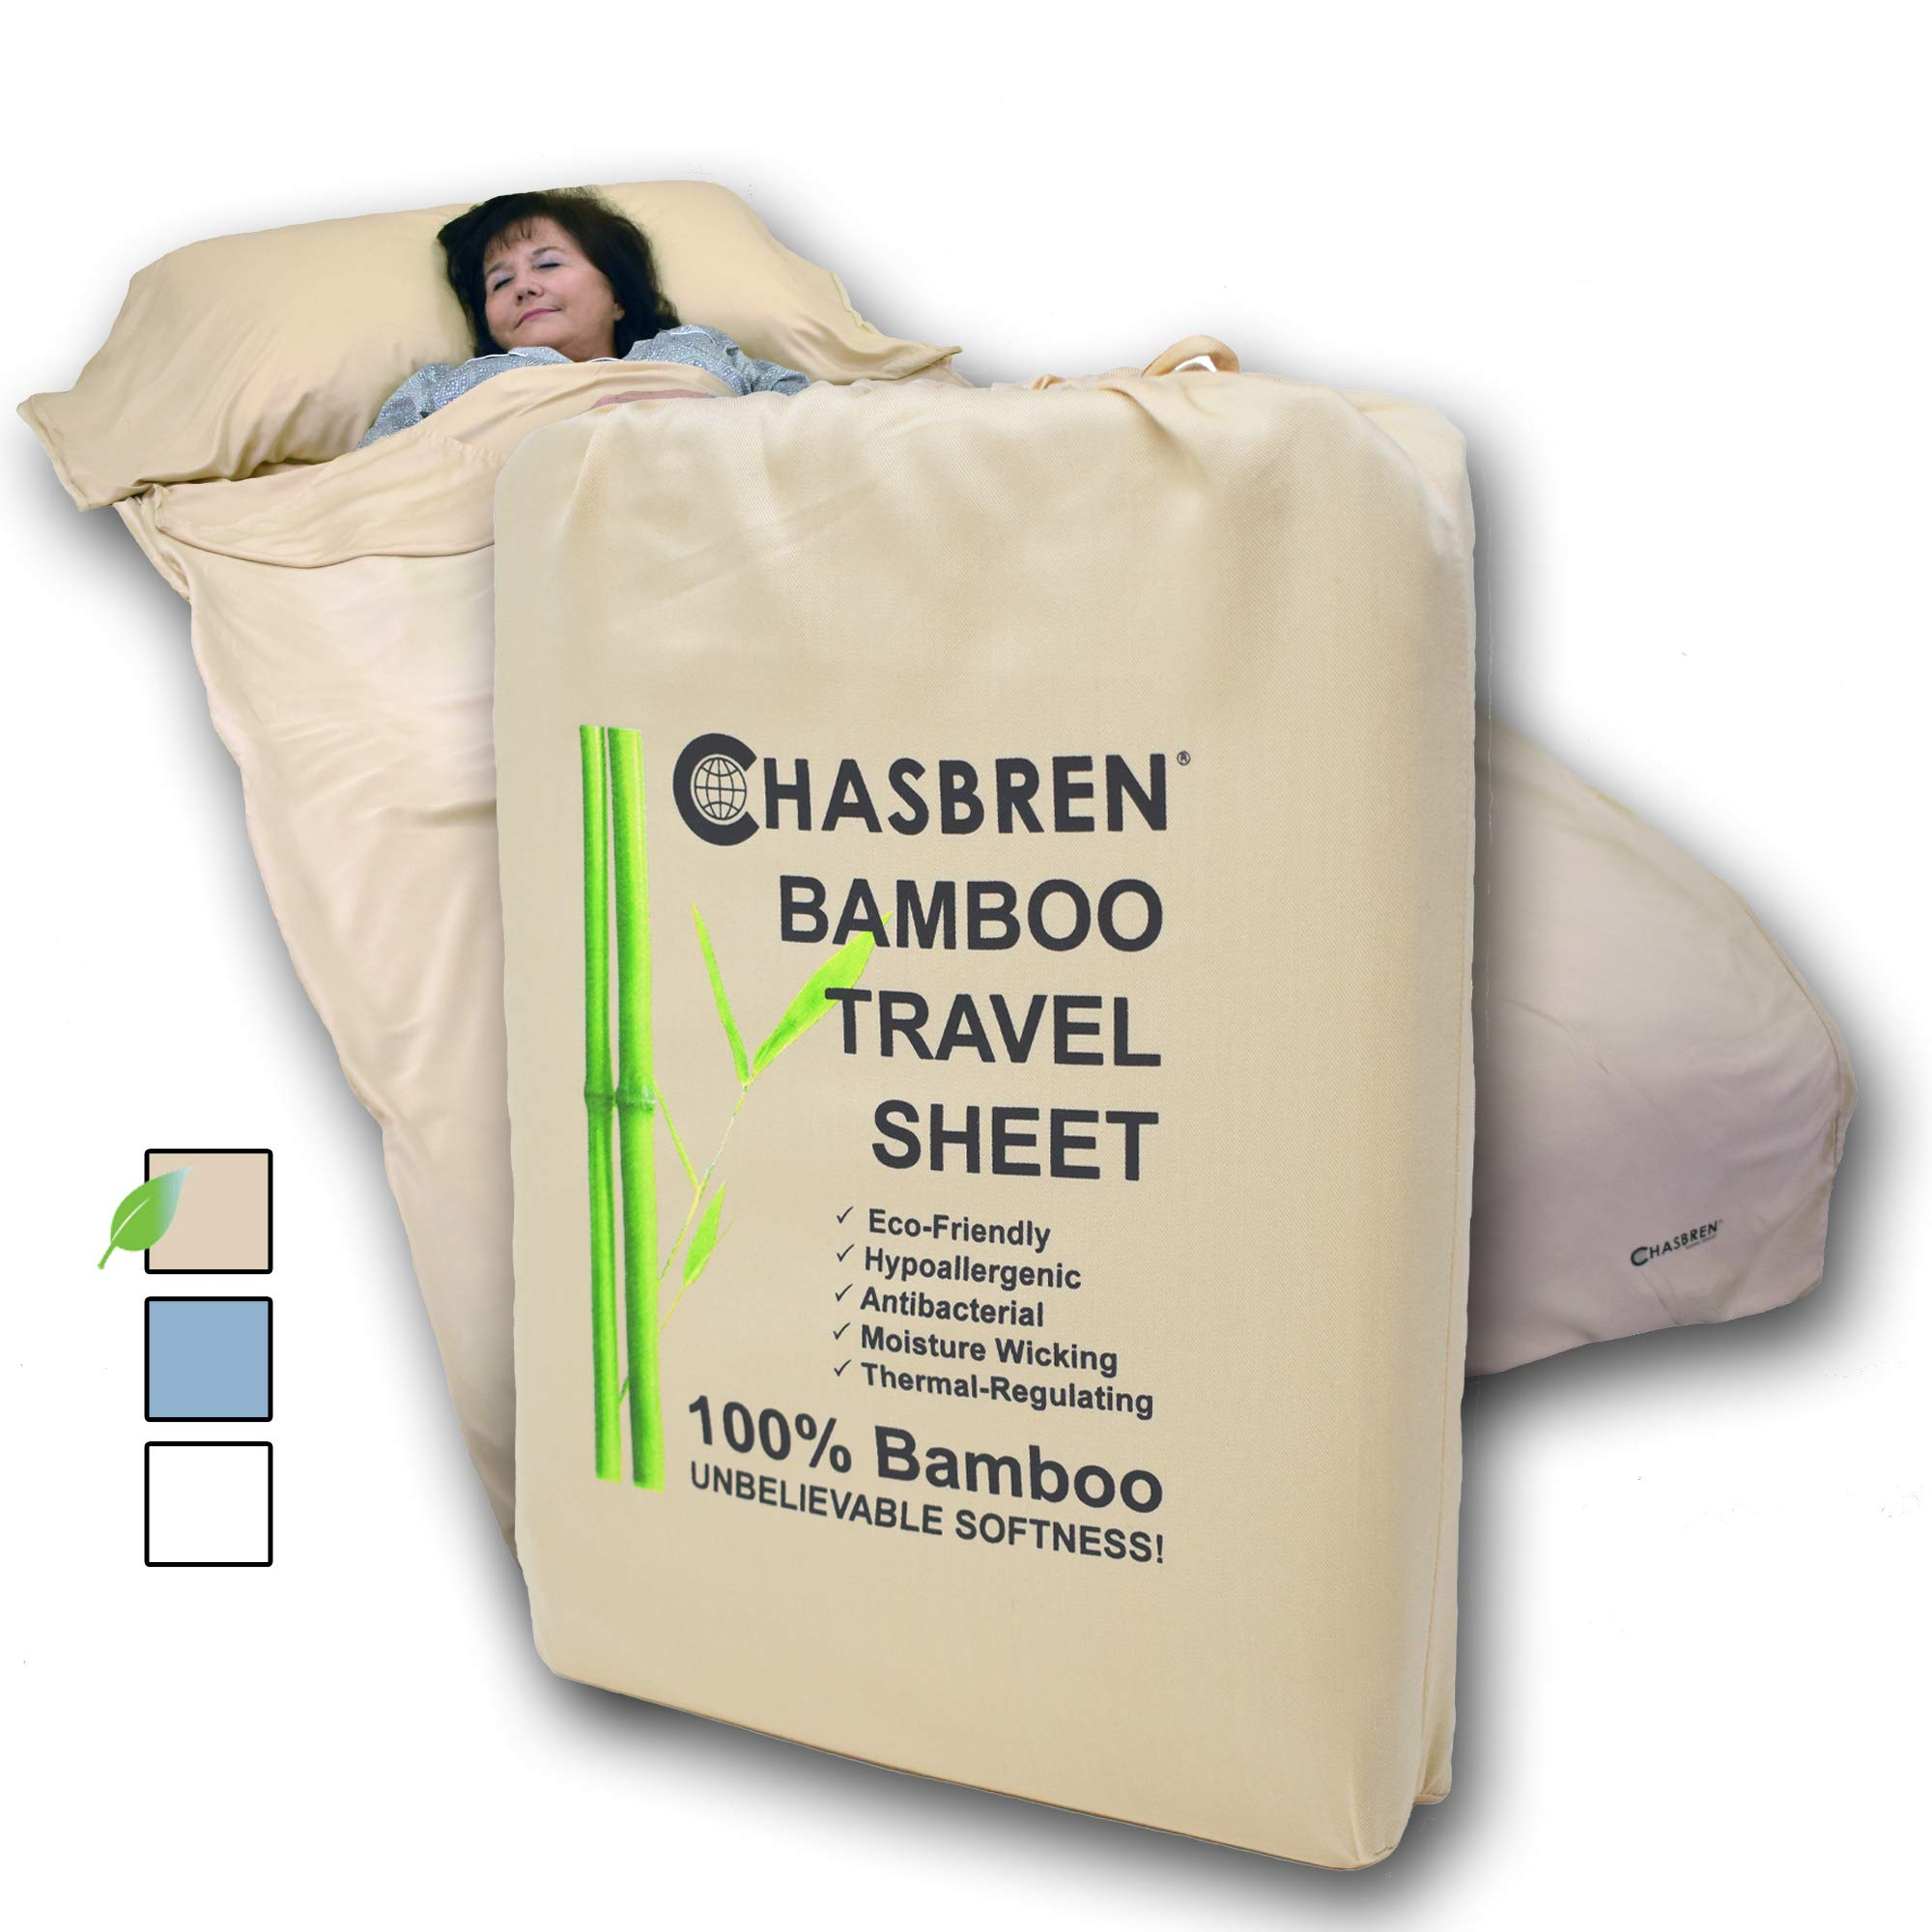 Chasbren Travel Sheet - 100% Bamboo Travel Bedding for Hotel Stays and Other Travels - Soft Comfortable Roomy Lightweight Sleep Sheet, Sack, Bag, Liner - Pillow Pocket, Zippers, Carry Bag (Tan) by Chasbren